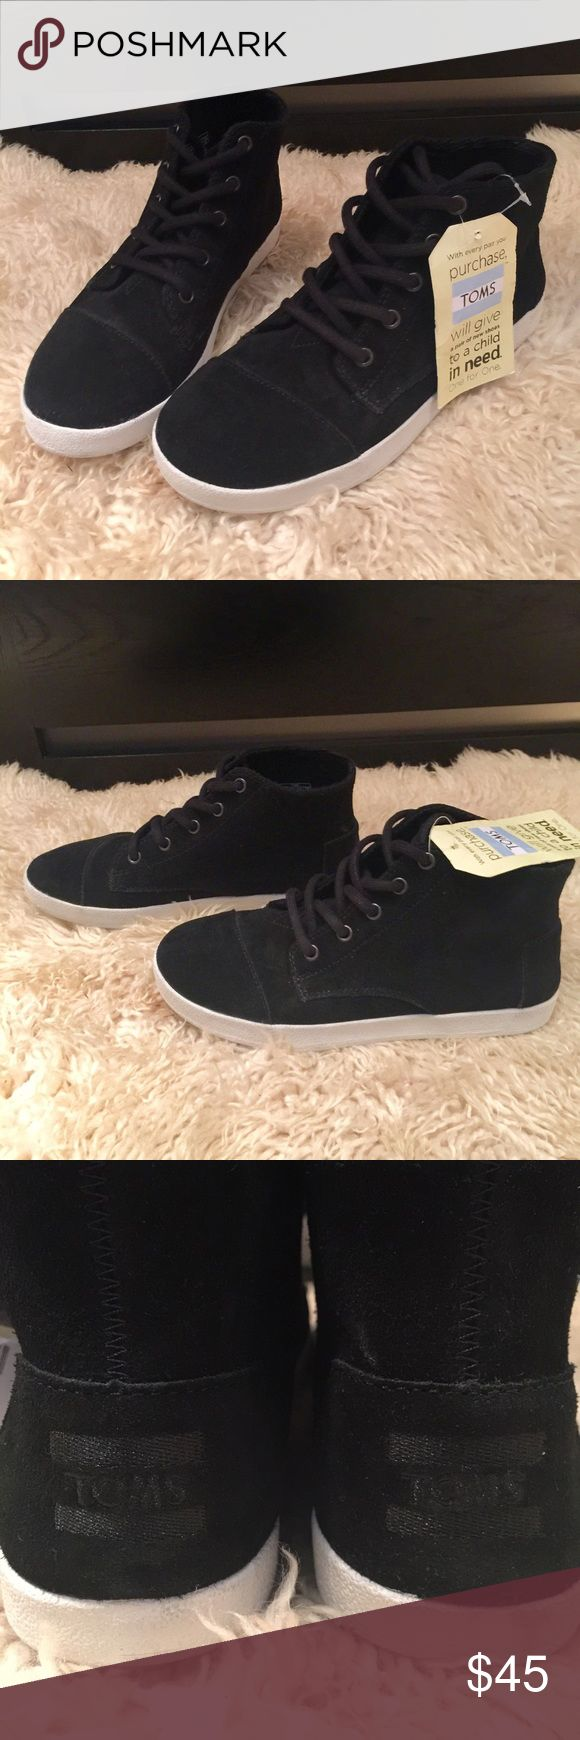 Toms Paseo High Sneaker NWT Stylish High Top Sneakers in Rich Suede, Round toe TOMS Shoes Sneakers